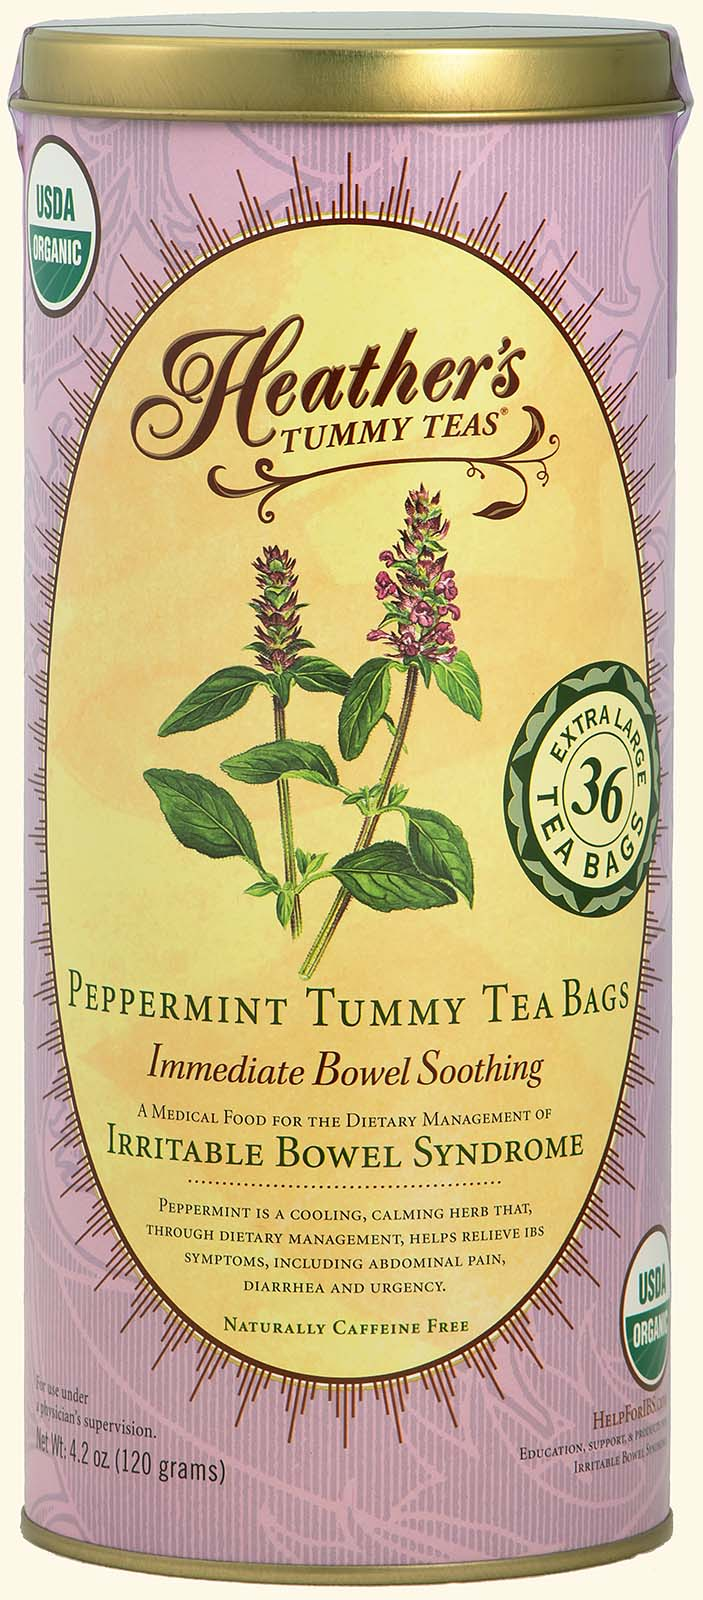 Peppermint<br>Tummy TEABAGS<br>36 jumbo bags<br><em>Pain & Urgency</em>